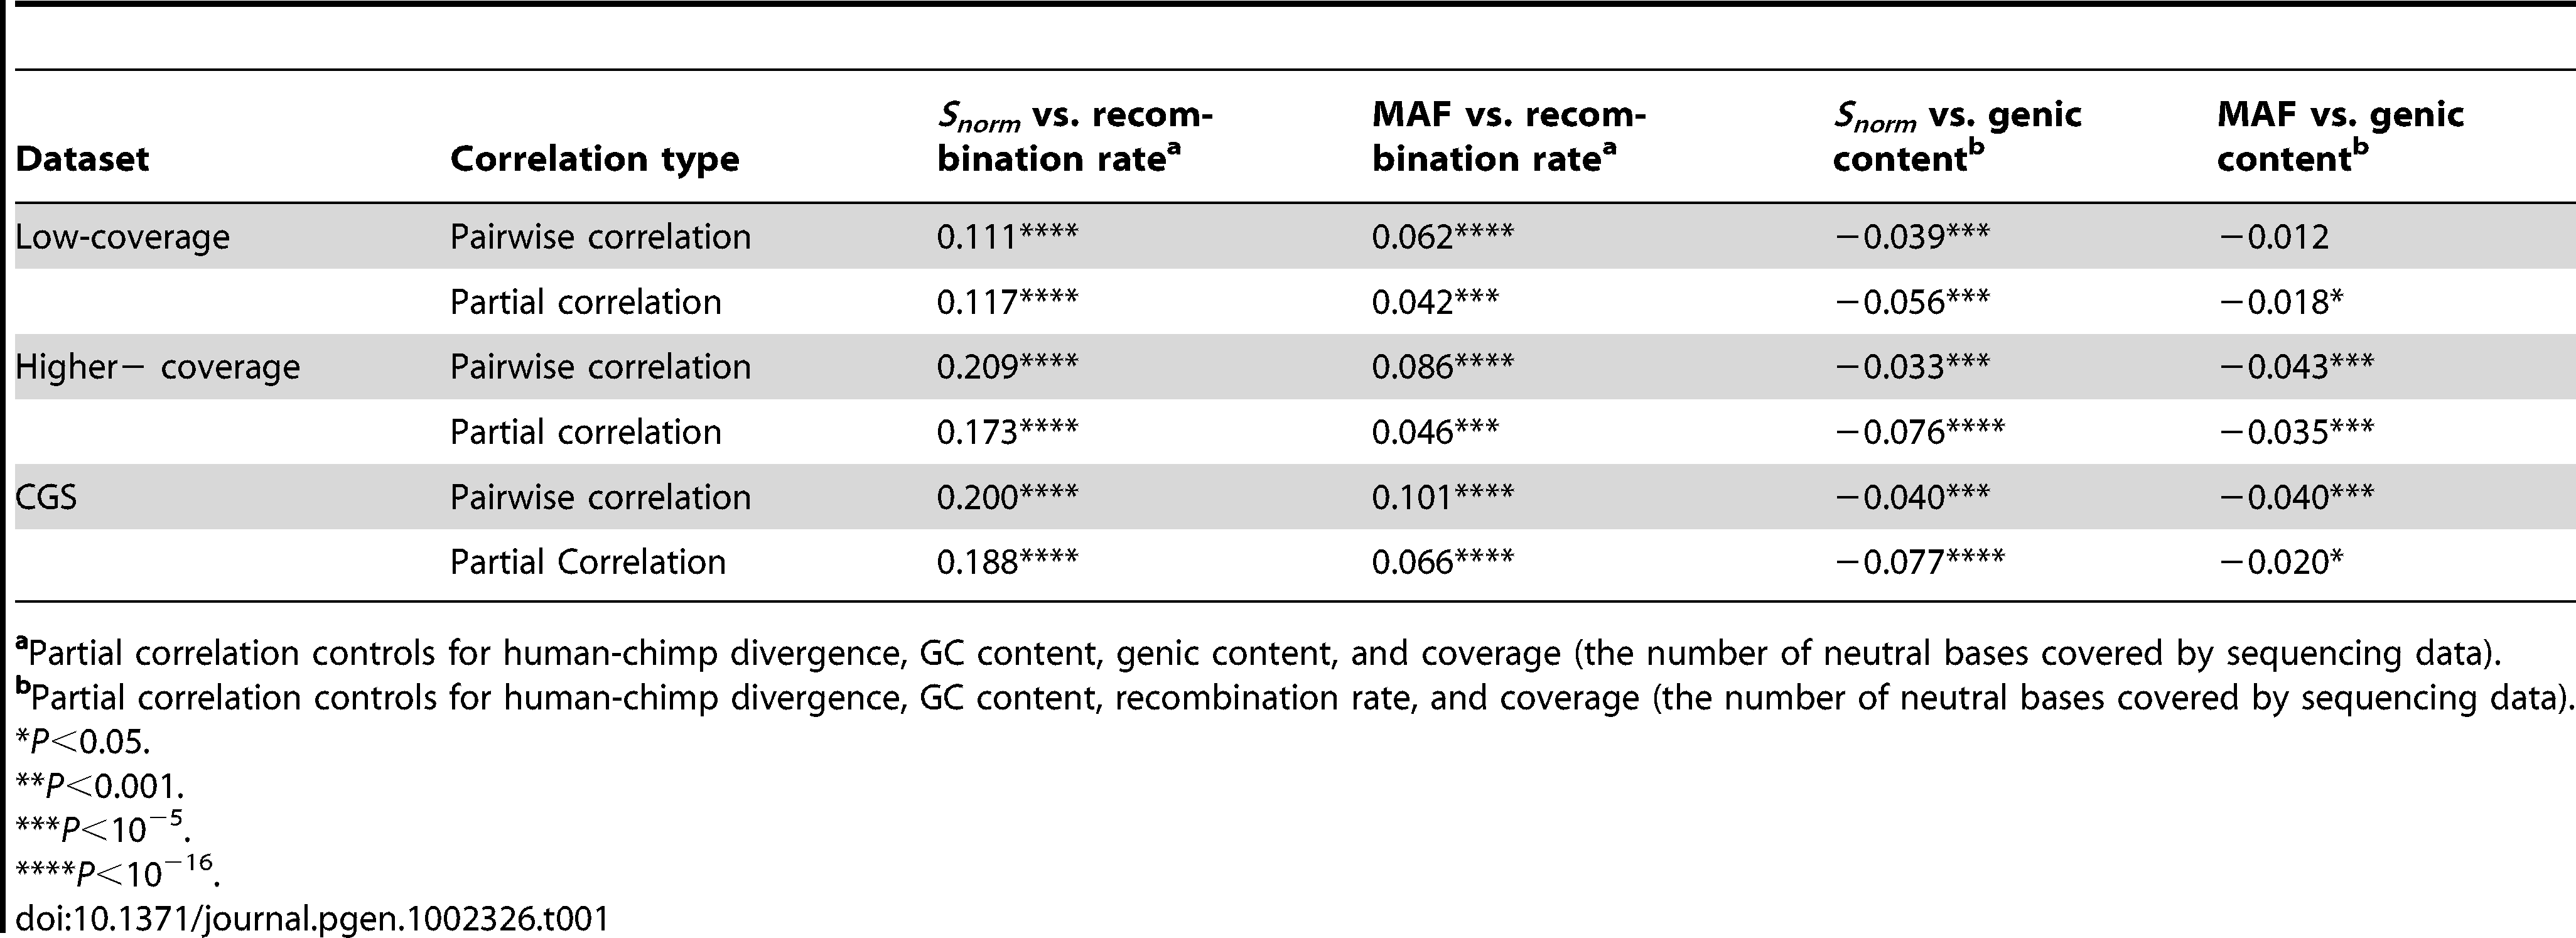 Summary of the correlation coefficients (Spearman's ) for the three datasets.